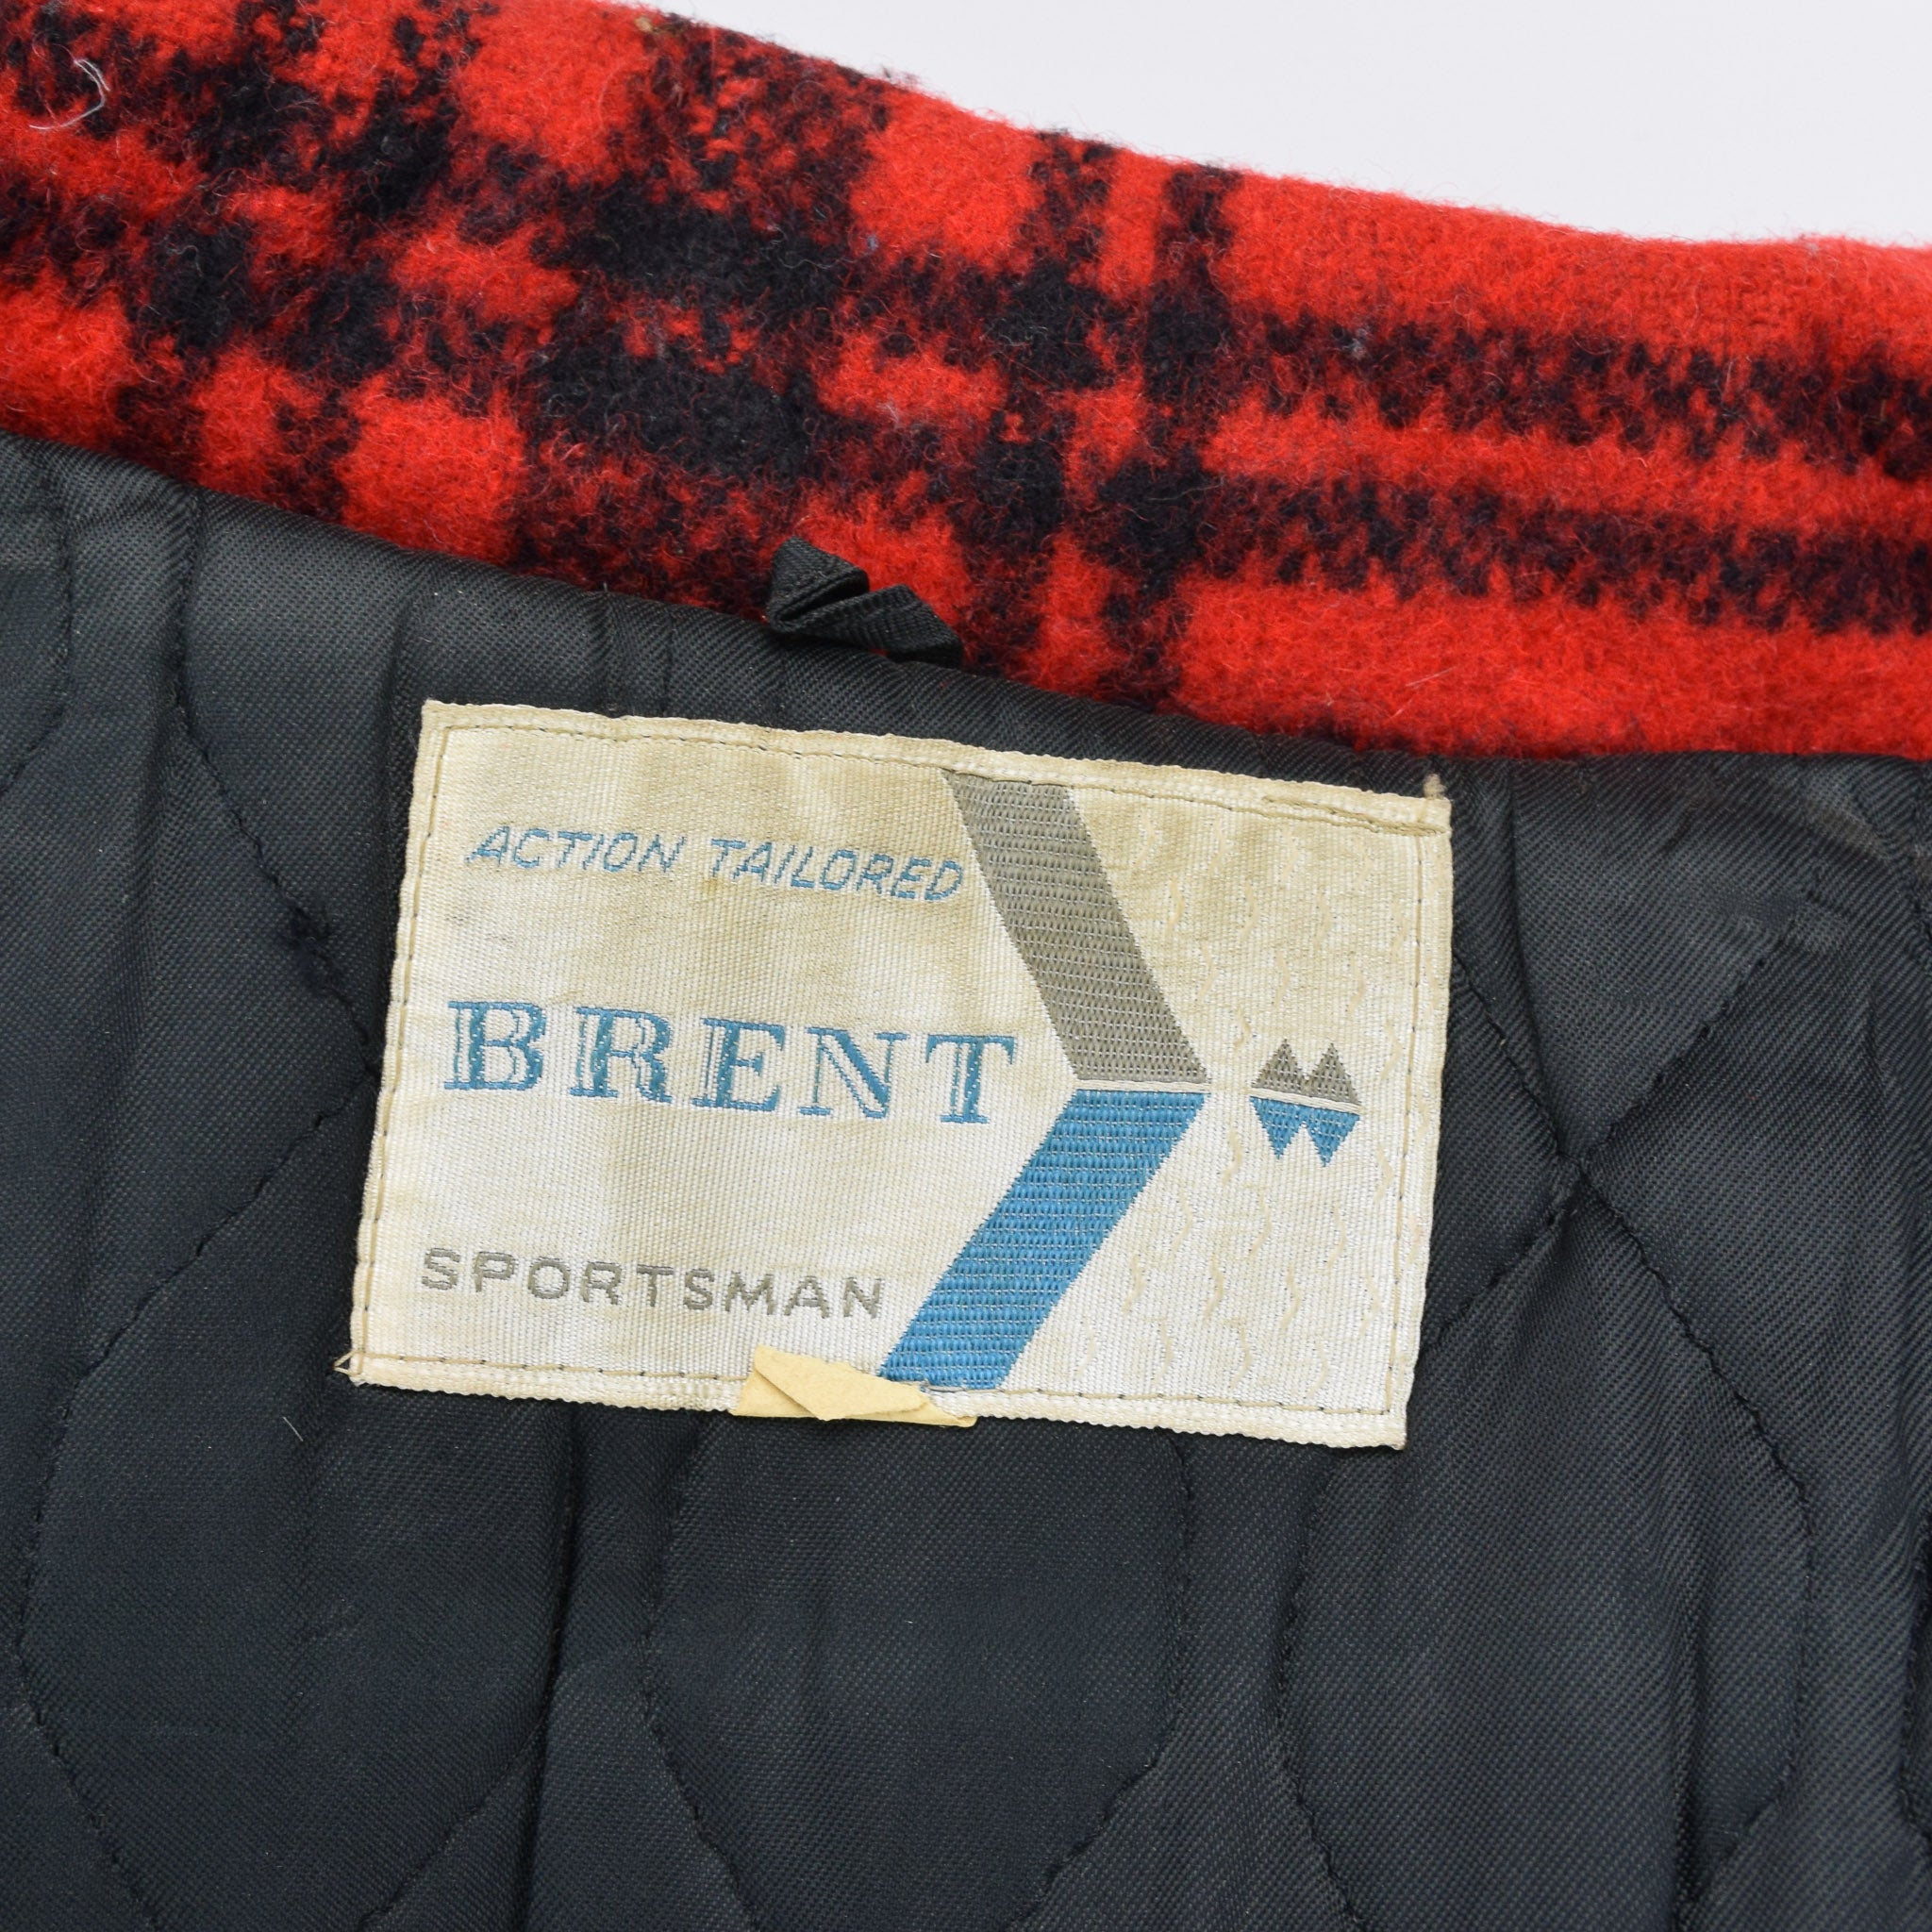 Vintage 60s Brent Sportsman Mackinaw Cruiser Hunting Jacket Buffalo Plaid M label